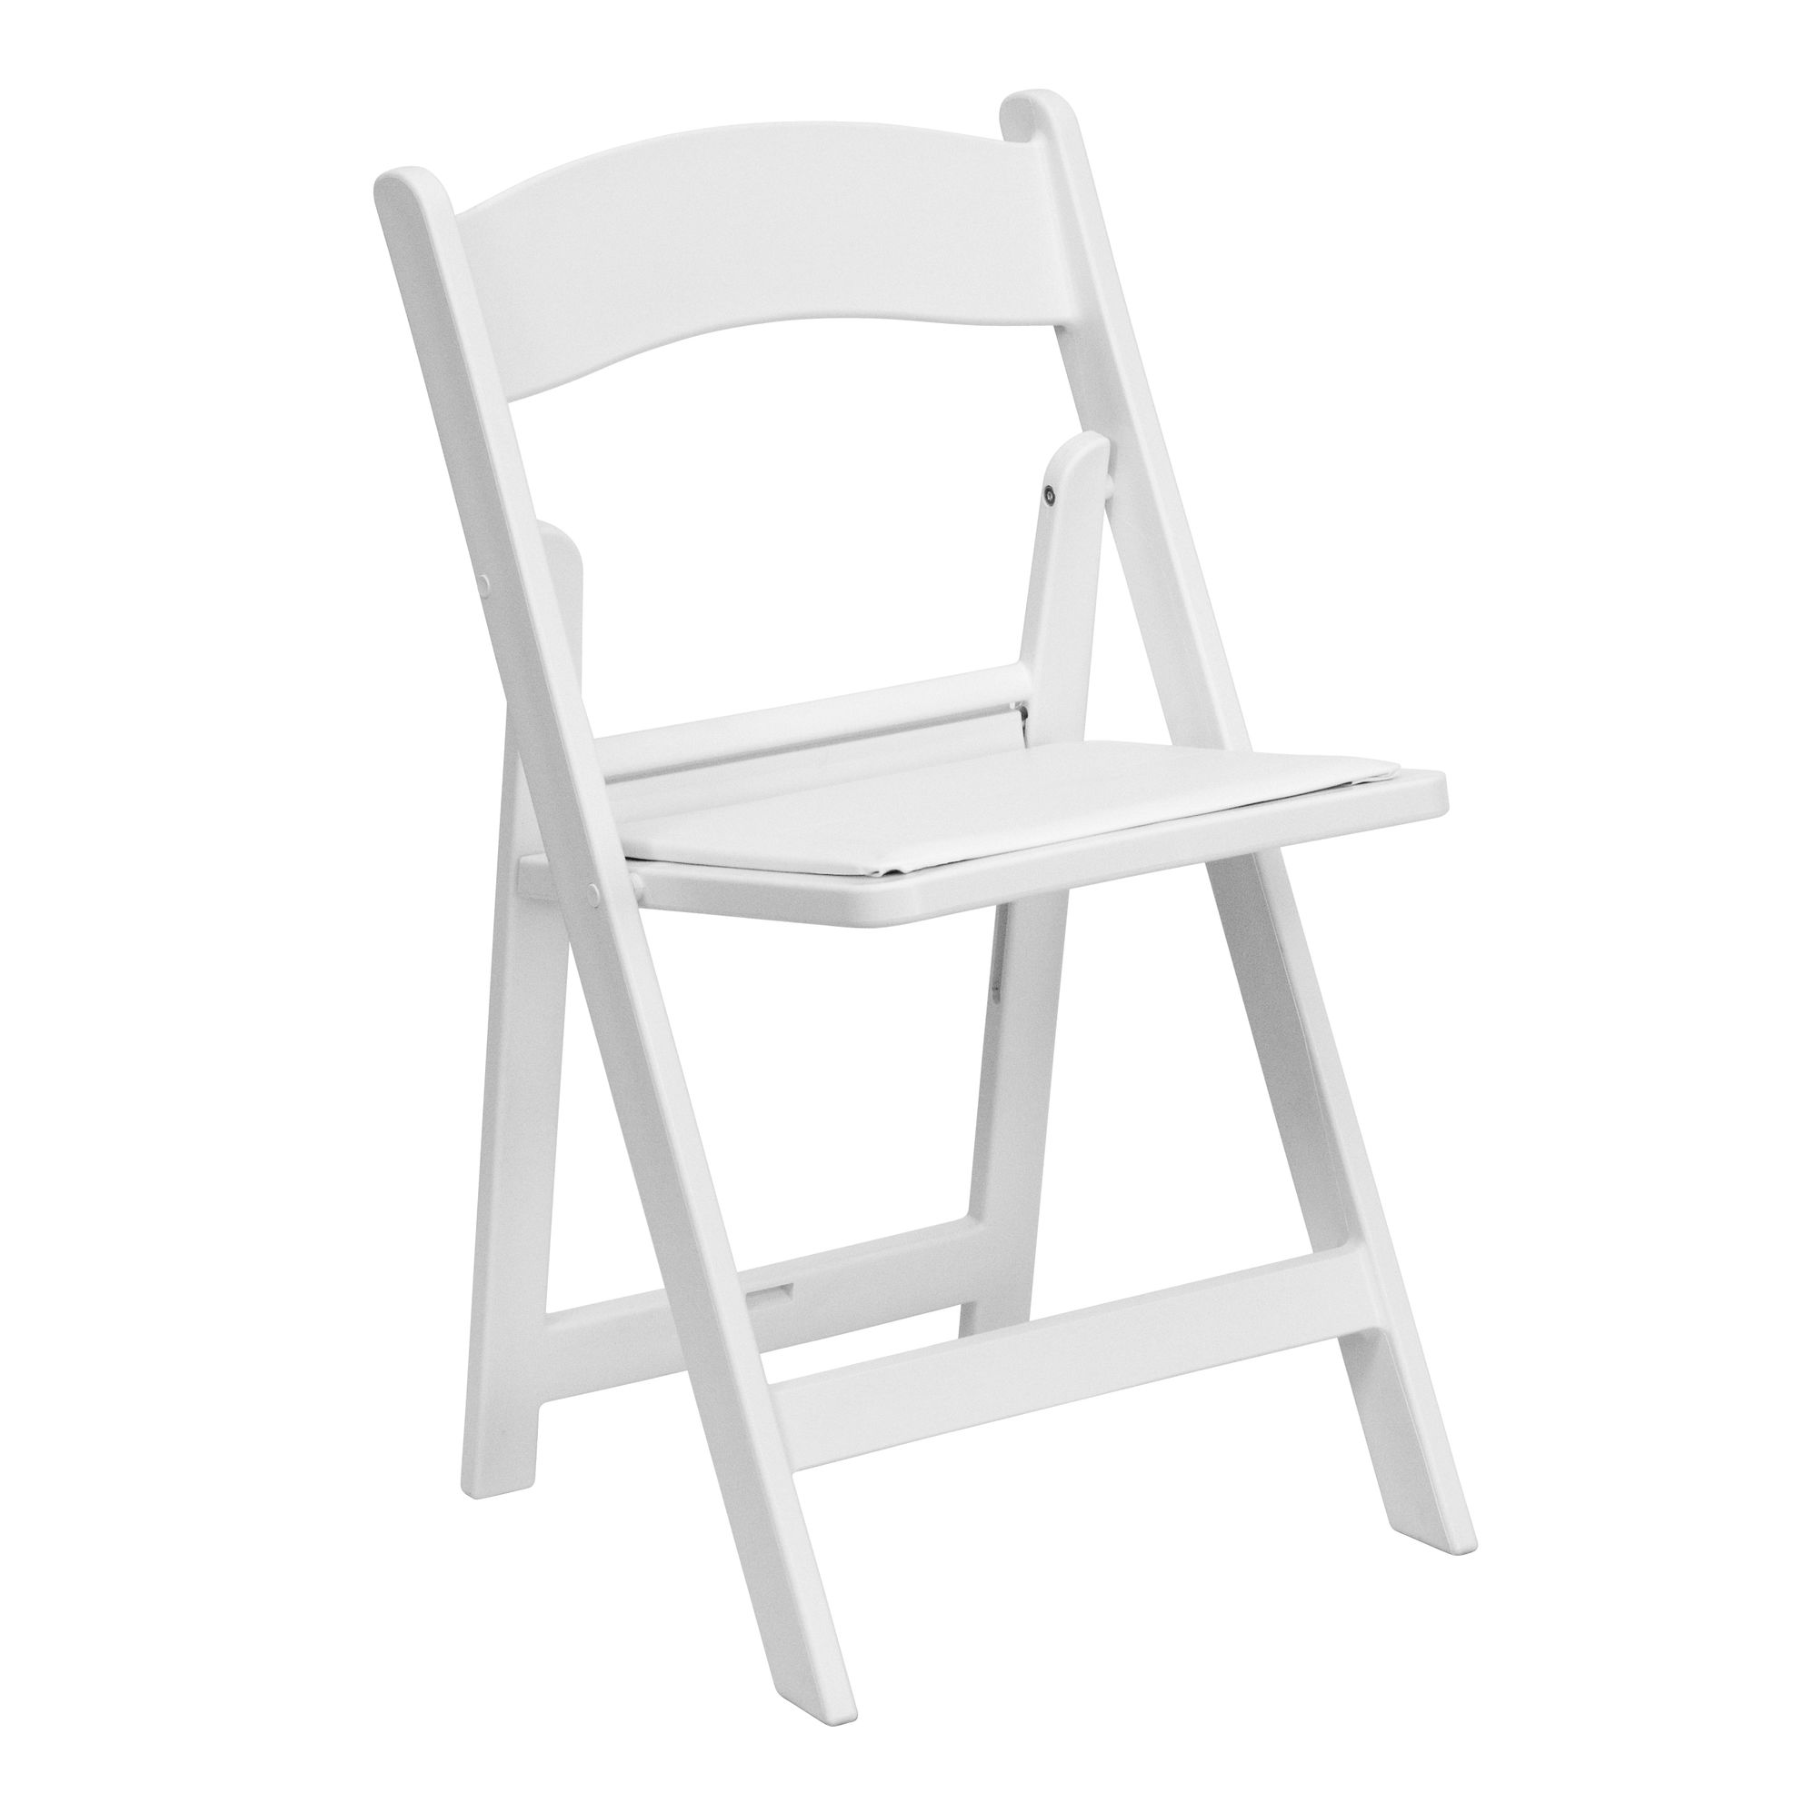 - White Padded Chair300 available